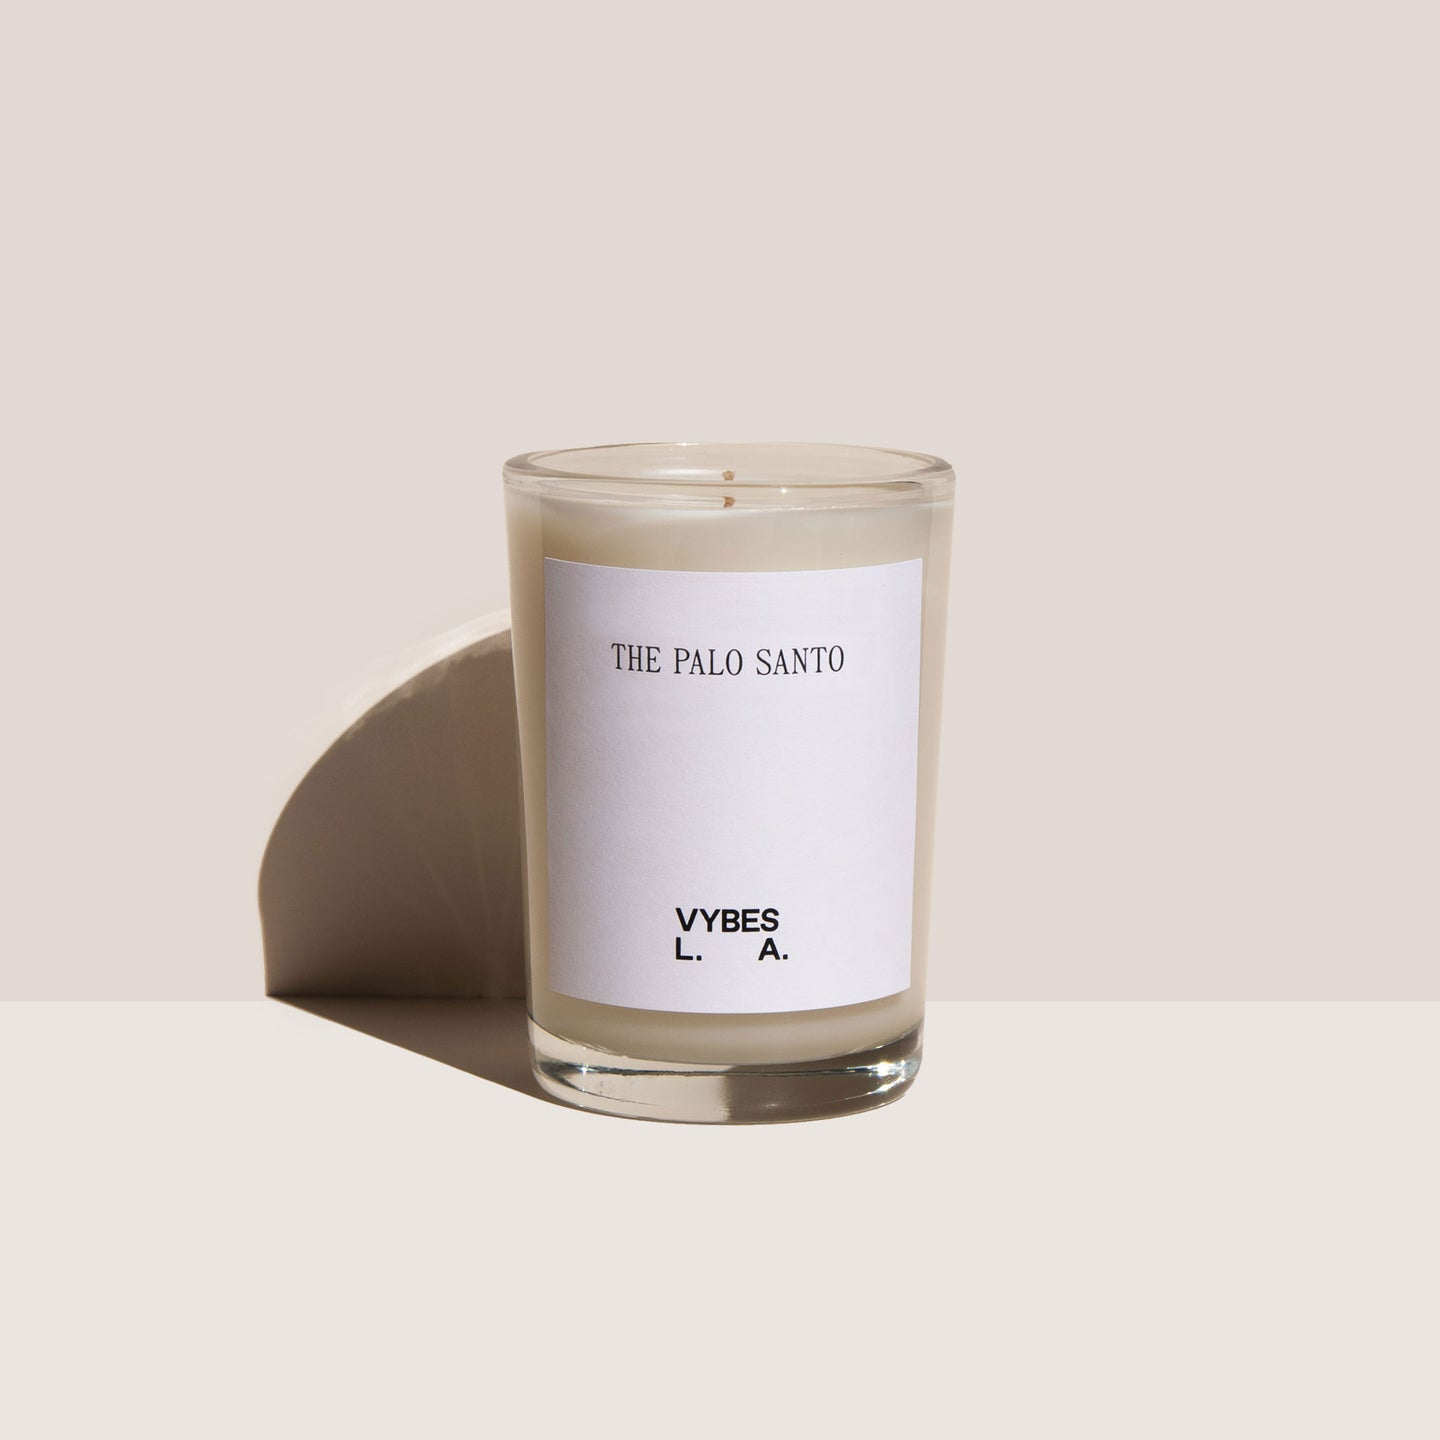 Vybes - The Palo Santo Candle, available at LCD.